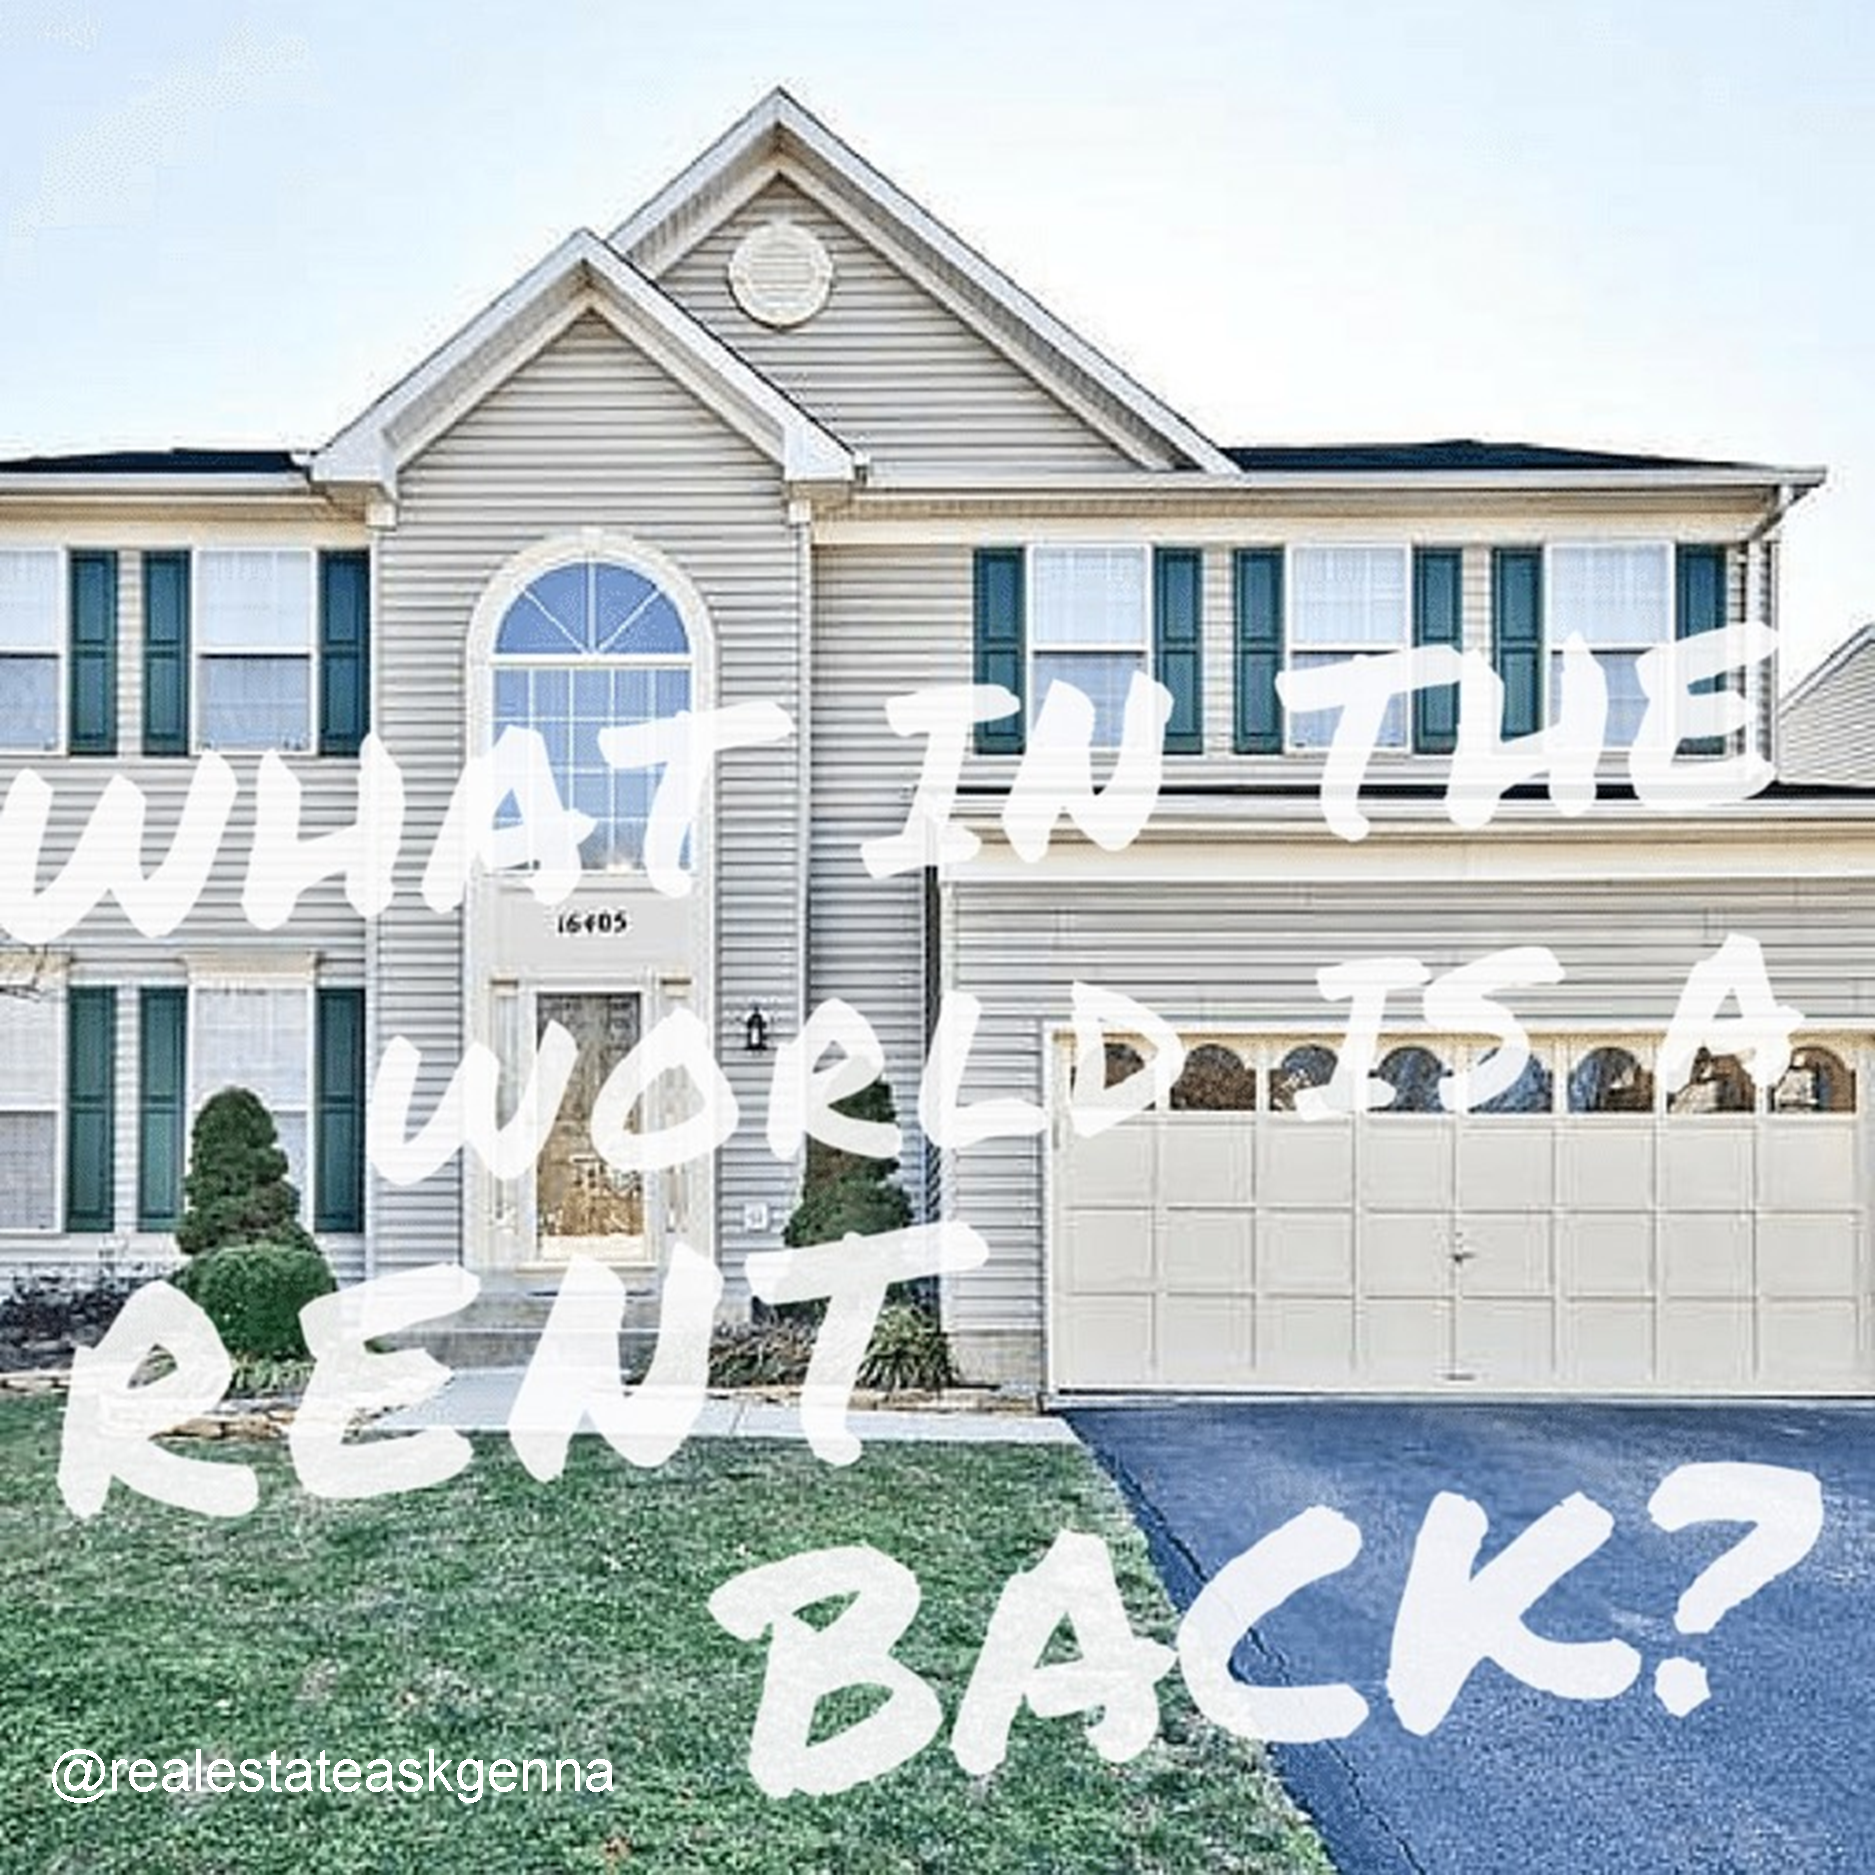 What in the world is a rent back? AskGenna